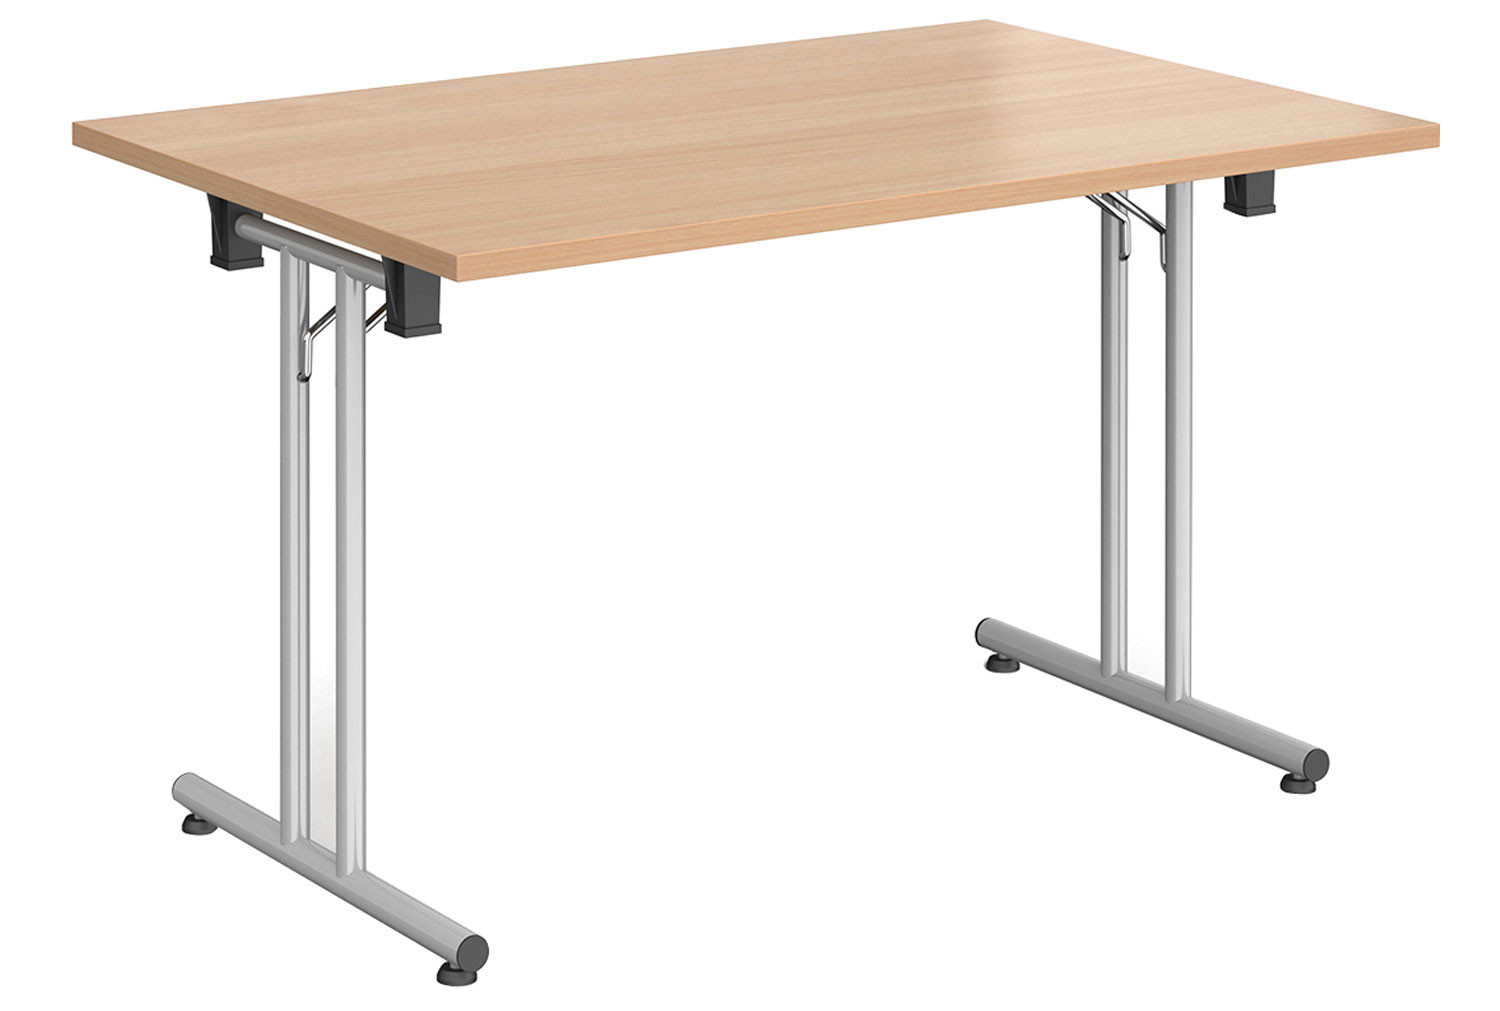 Rios Rectangular Folding Table